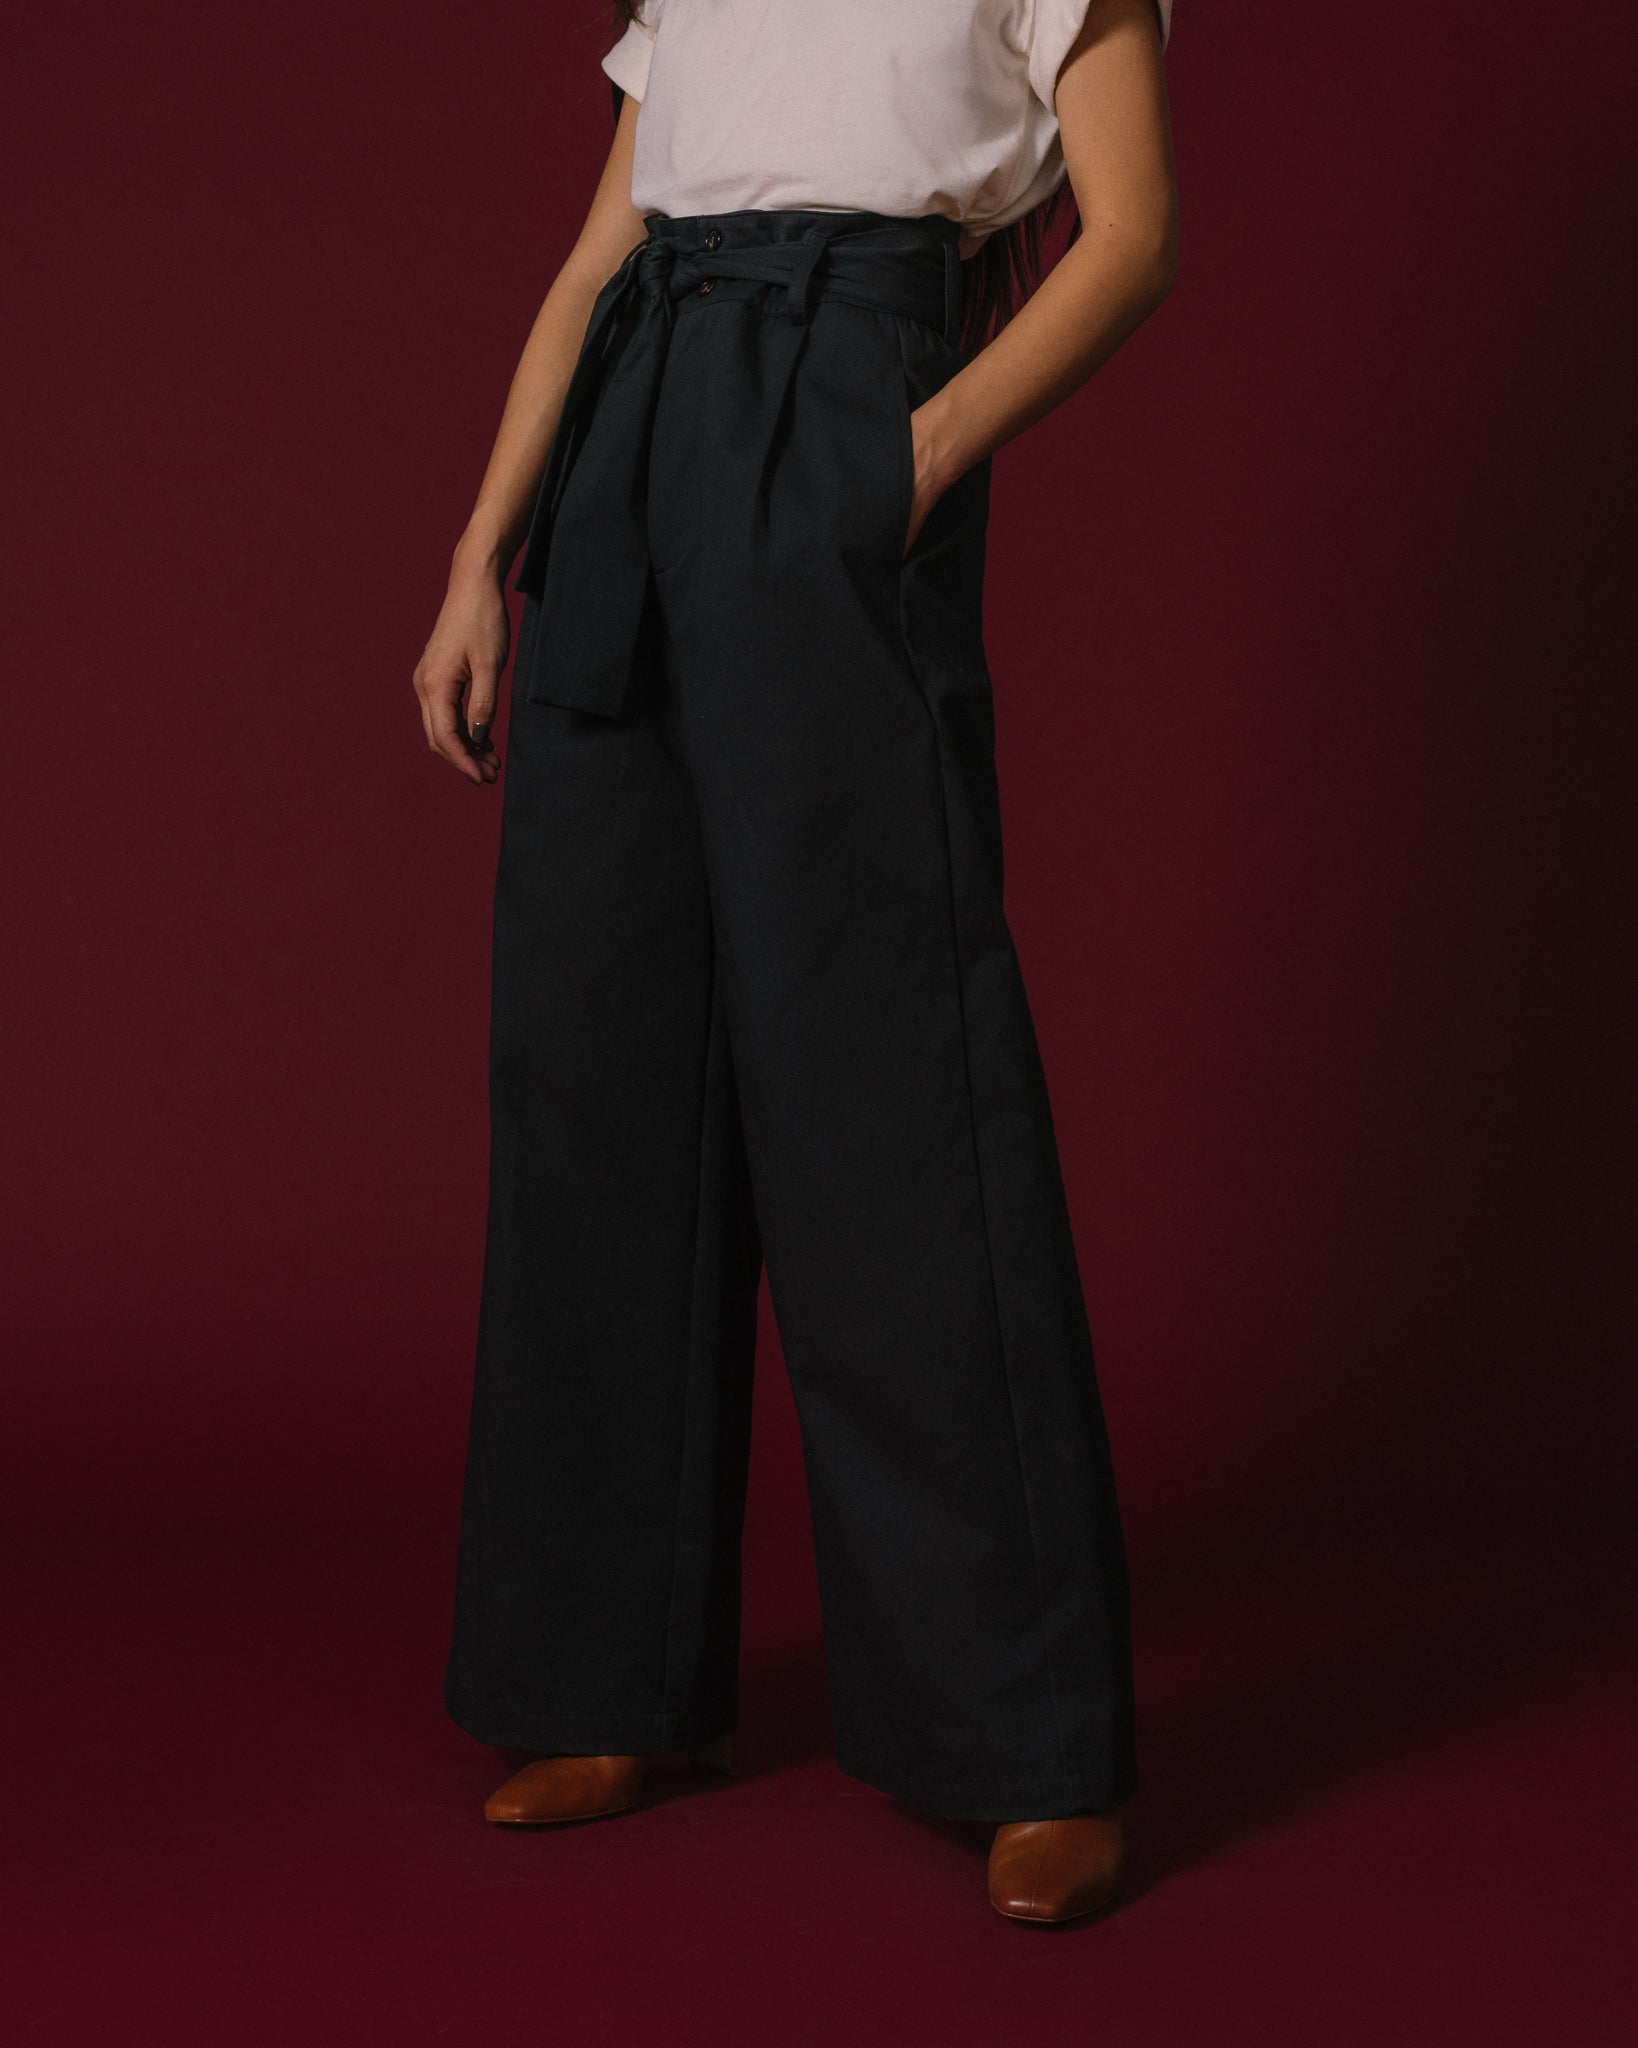 The Luna Pant - 20% Off